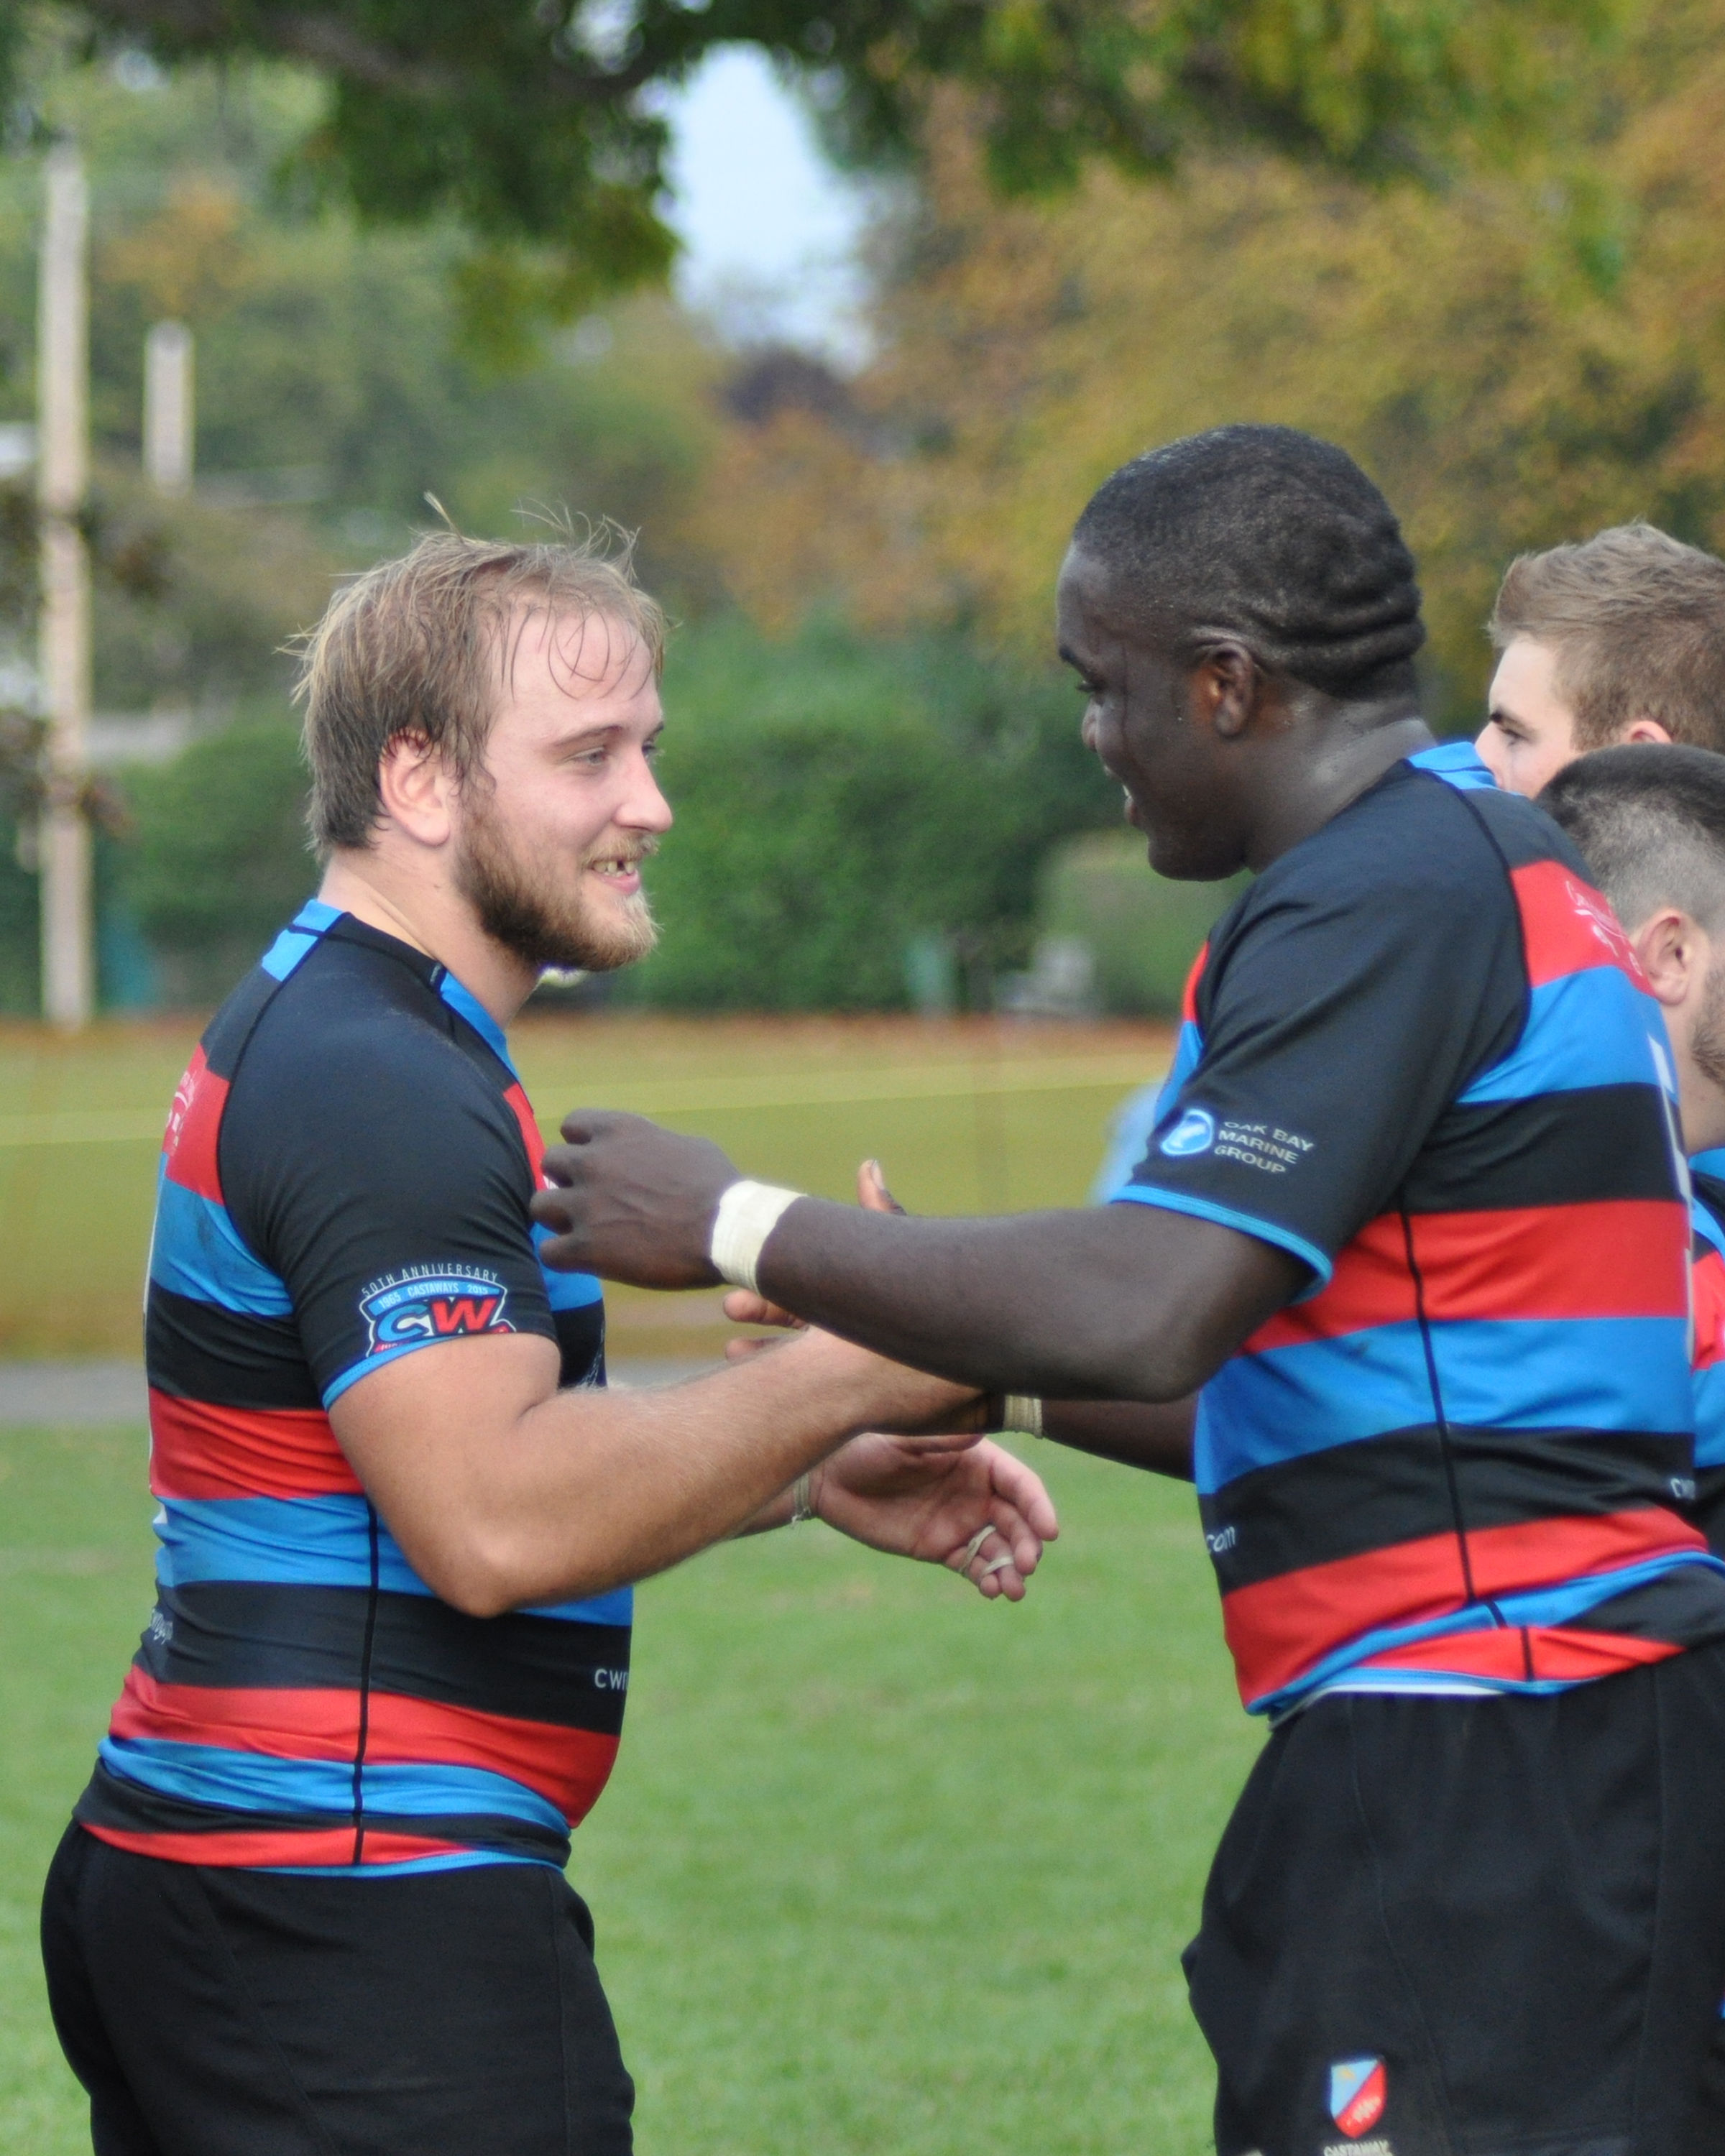 School Rugby Takes Over - Image 2